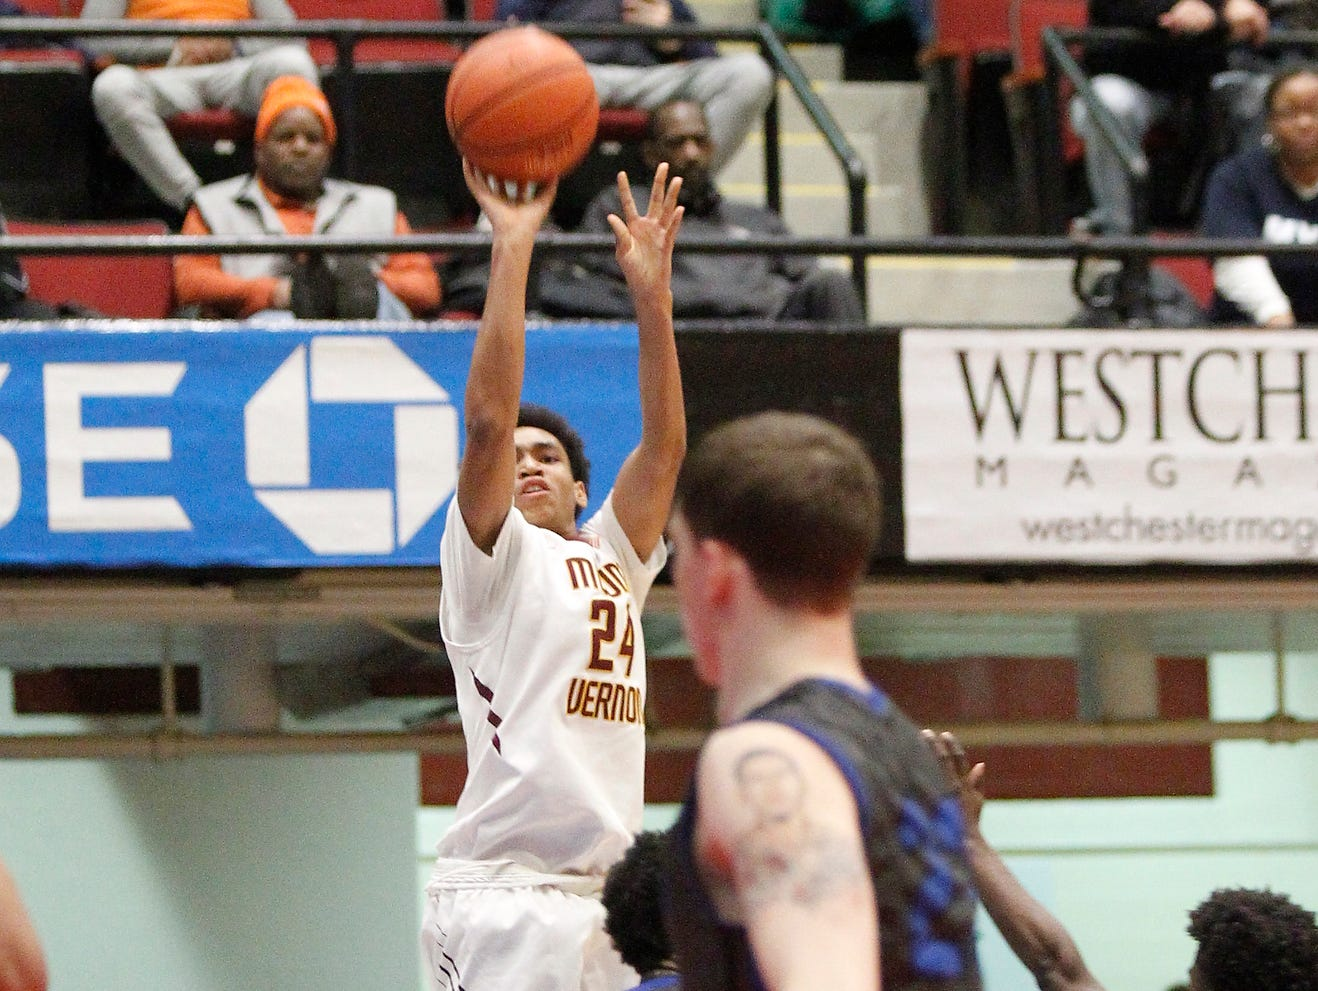 Mount Vernon's Jason Douglas-Stanley (24) puts up a shot during the boys Class AA semi-final basketball game against Saunders at the County Center in White Plains on Friday, February 26, 2016.